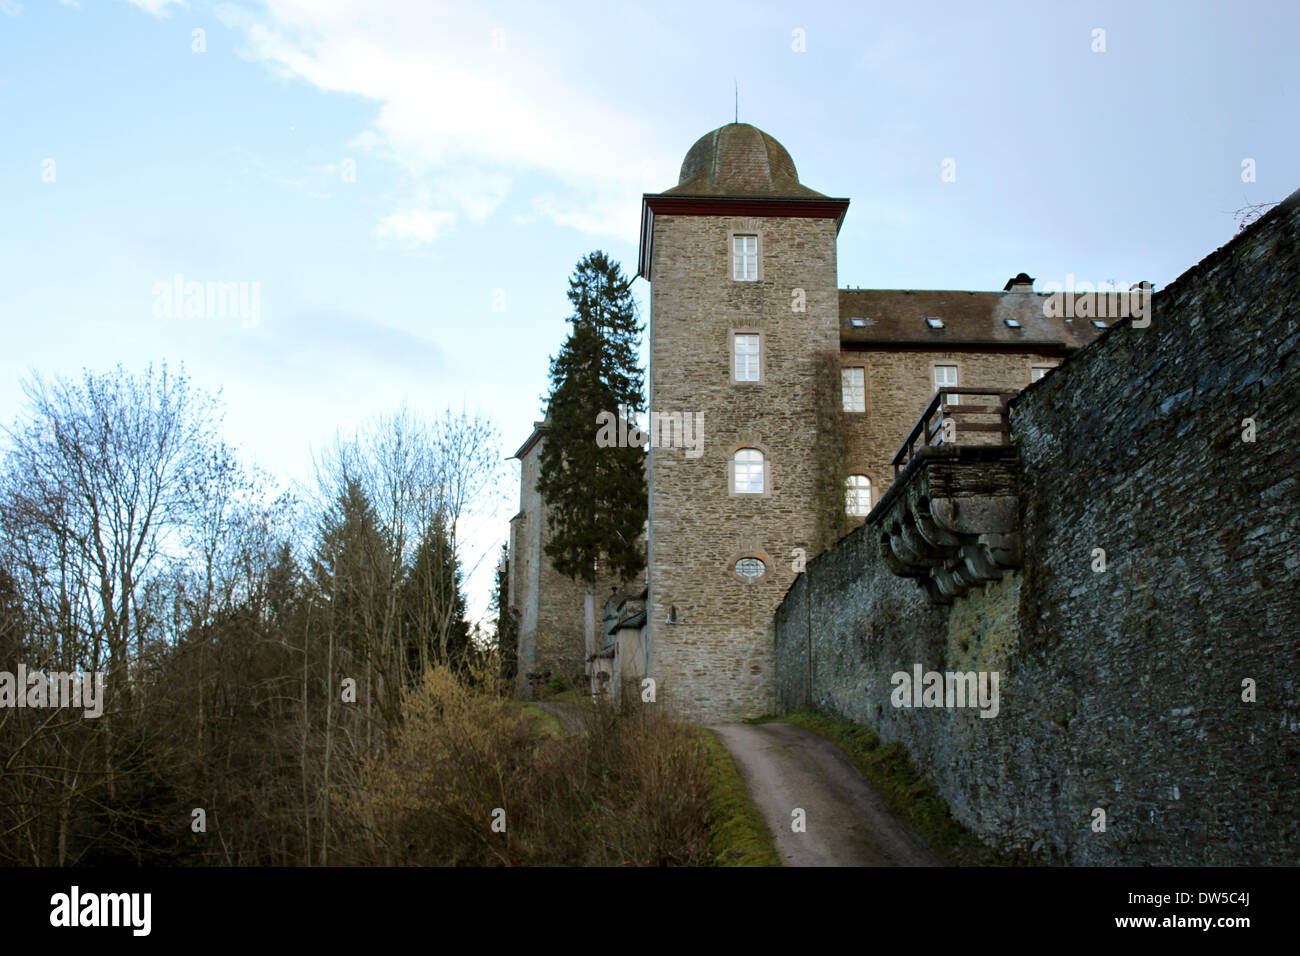 Castle Schnellenberg with Tower and outside wall in Attendorn Stock Photo